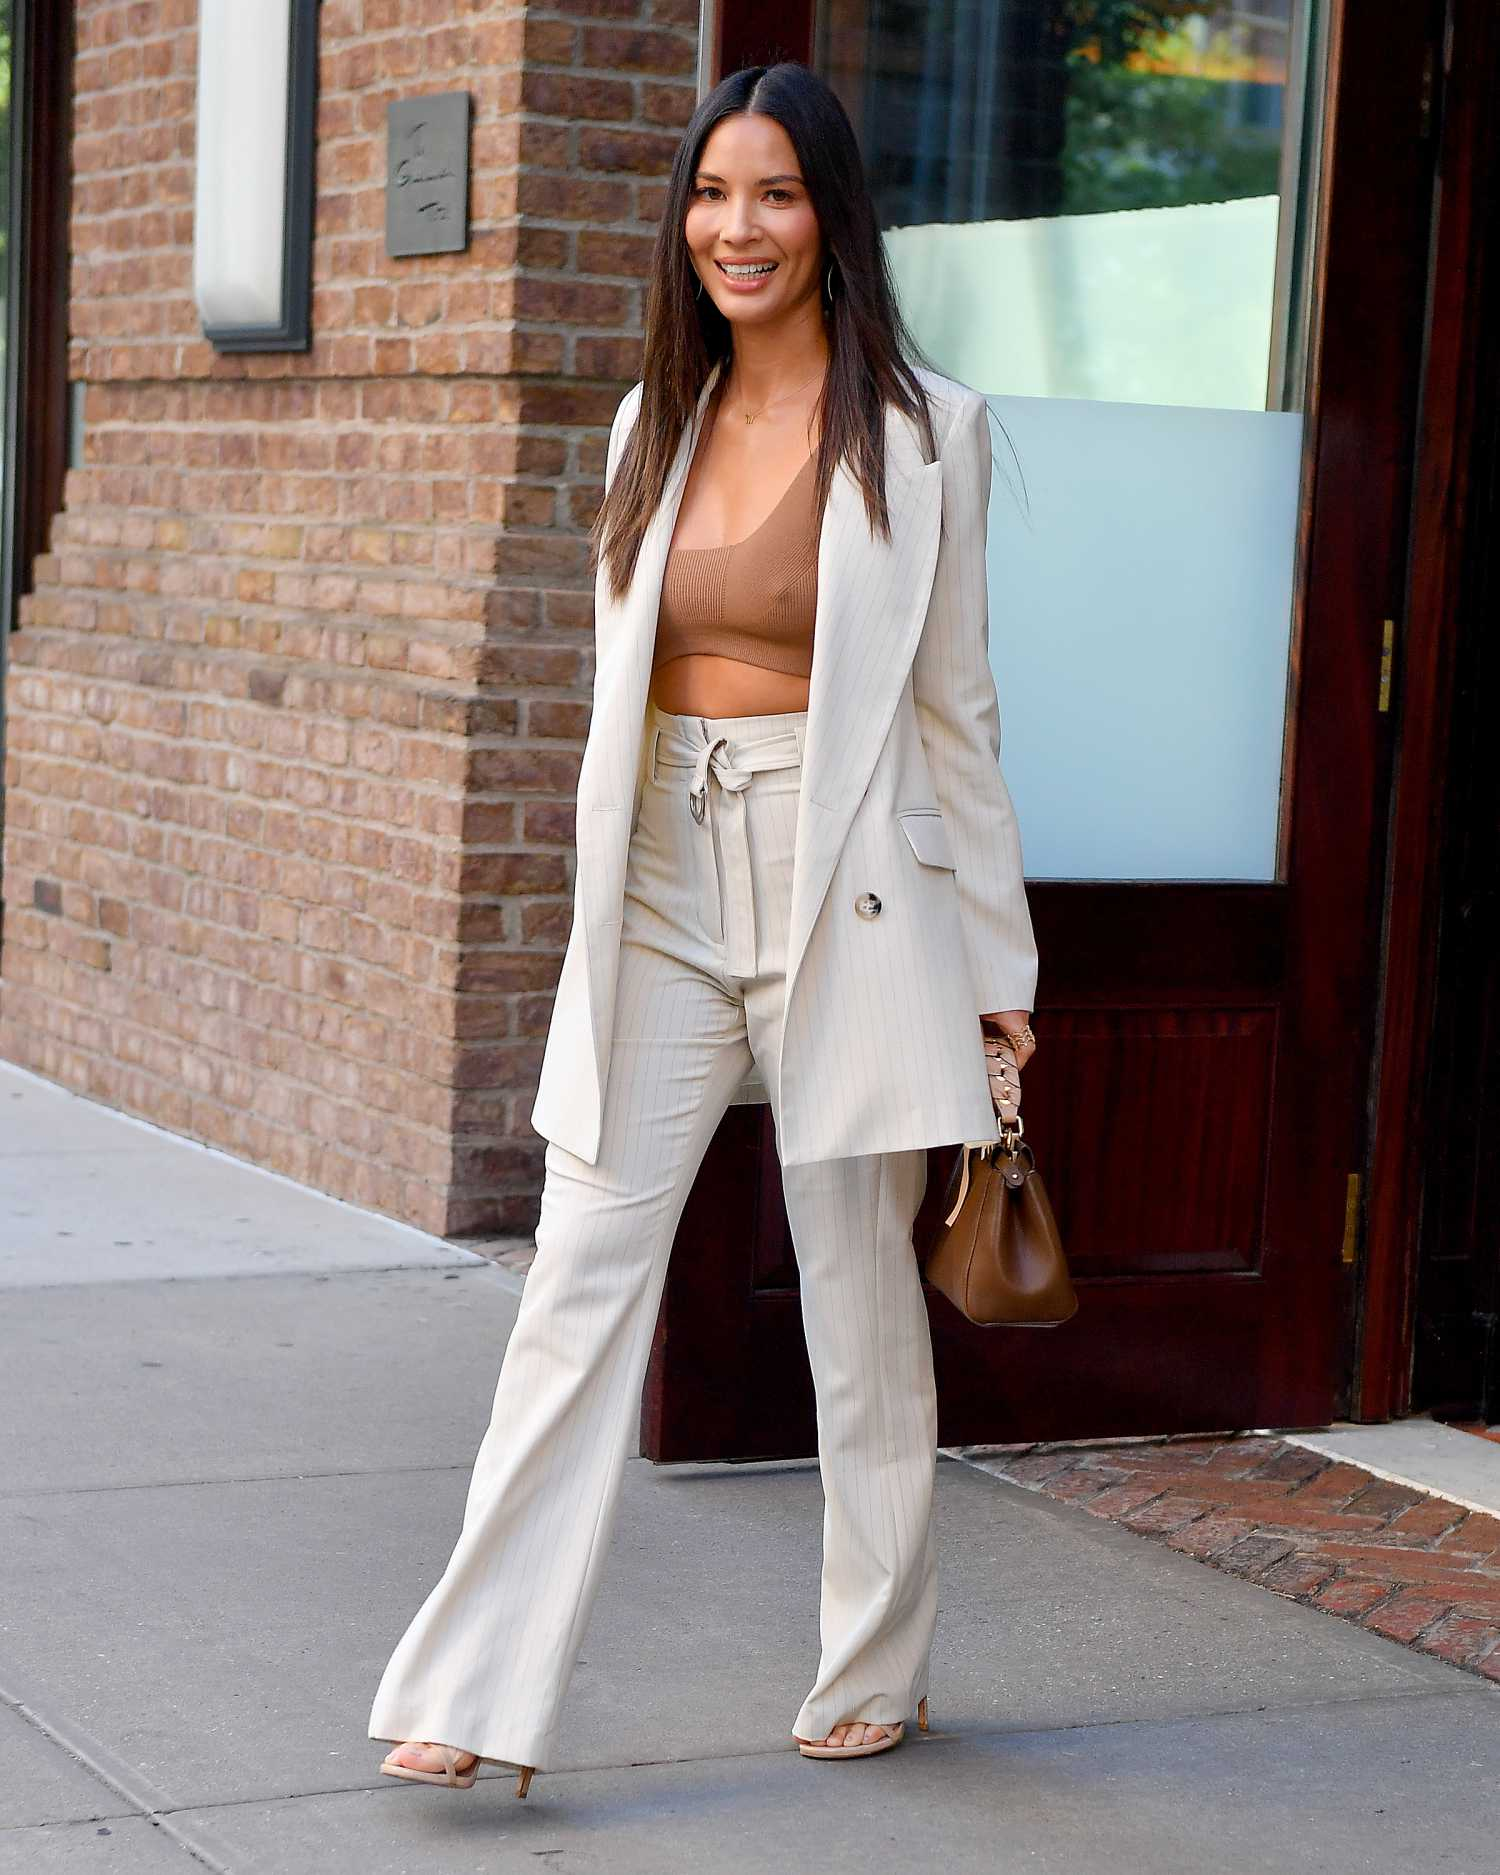 Olivia Munn In A White Striped Suit Was Seen Out In New